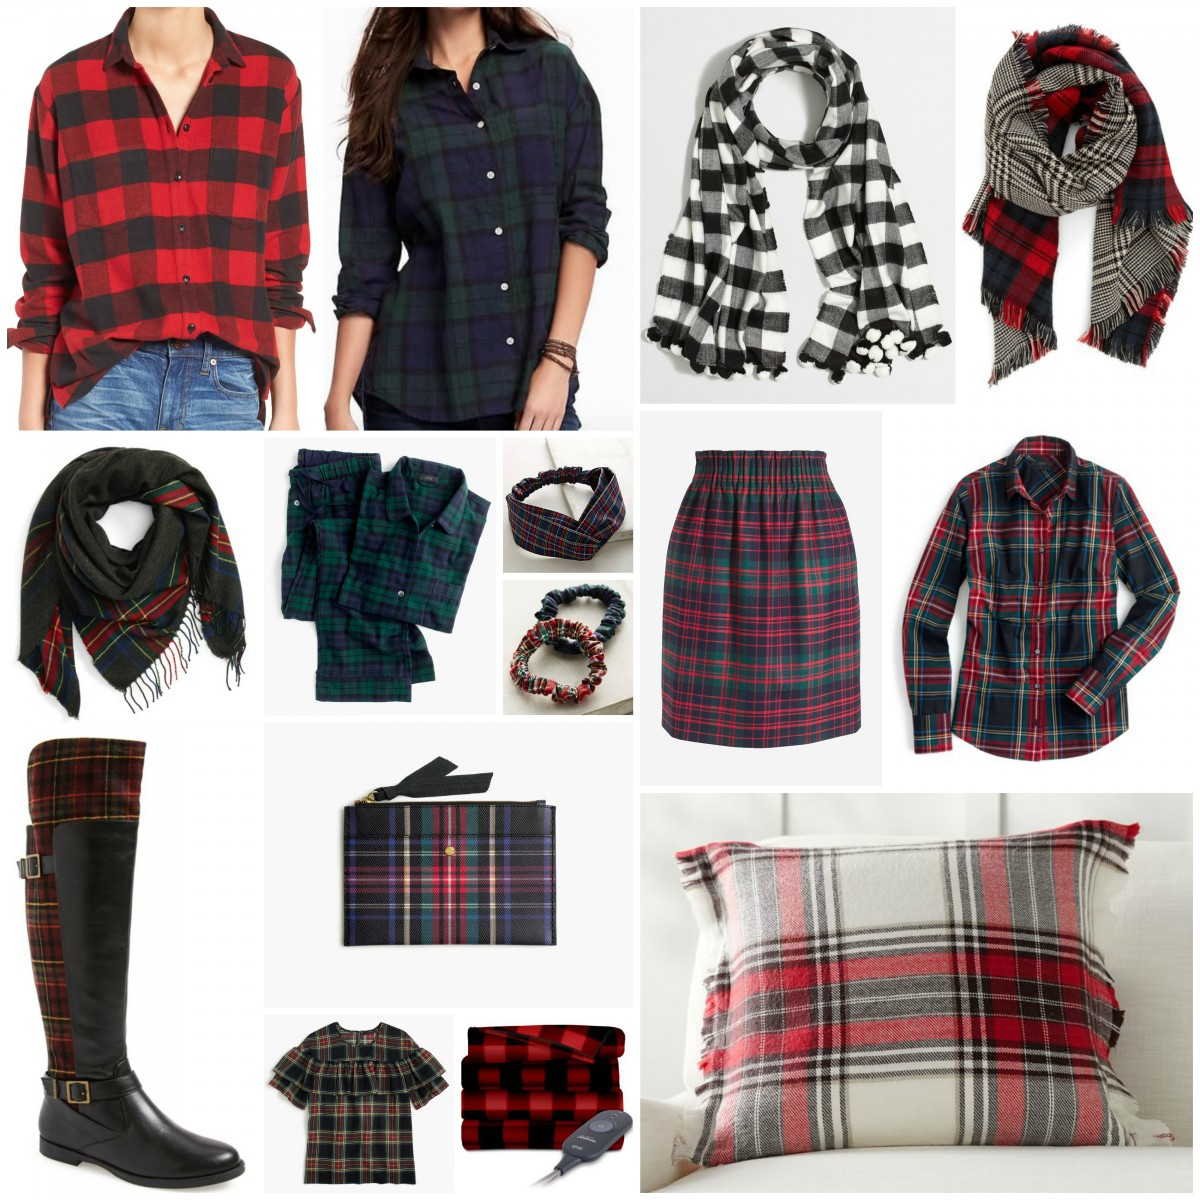 Gift Guide for the Plaid Lover Her Heartland Soul